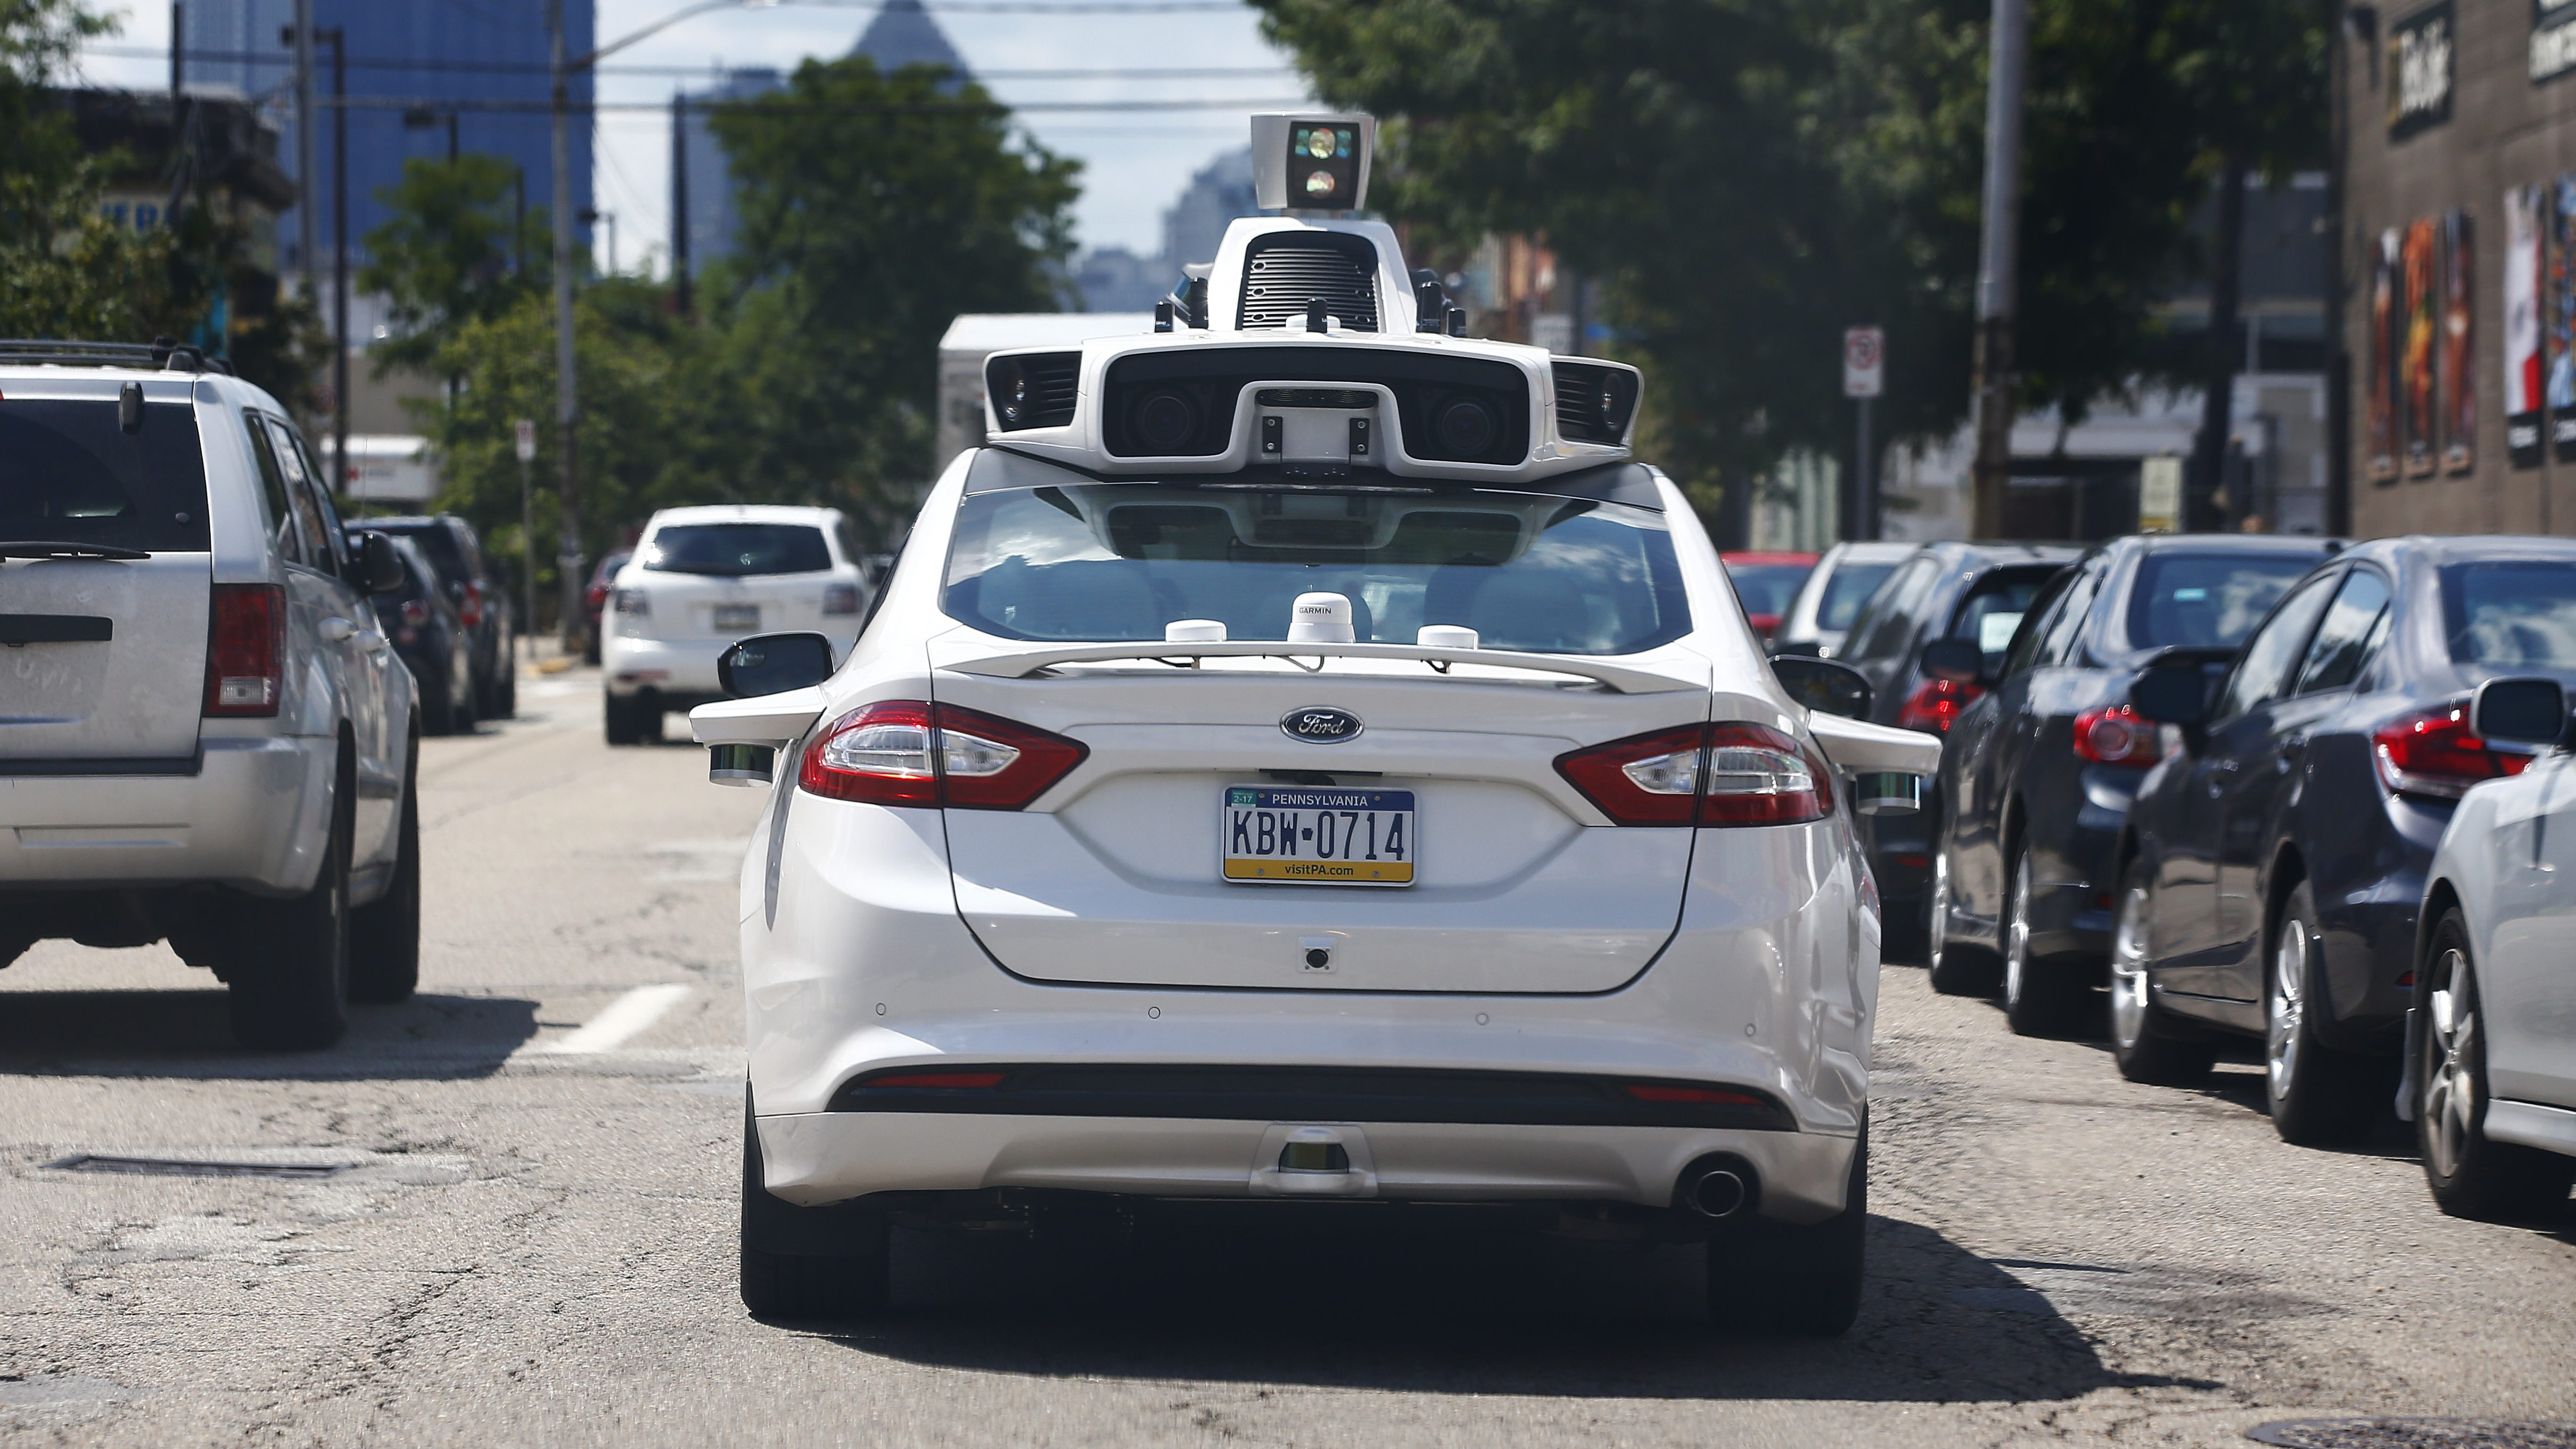 A self-driving Ford Fusion hybrid car is test driven, Thursday, Aug. 18, 2016, in Pittsburgh. Uber said that passengers in Pittsburgh will be able to summon rides in self-driving cars with the touch of a smartphone button in the next several weeks. The high-tech ride-hailing company said that an unspecified number of autonomous Ford Fusions with human backup drivers will pick up passengers just like normal Uber vehicles. Riders will be able to opt in if they want a self-driving car, and rides will be free to those willing to do it, spokesman Matt Kallman said. (AP Photo/Jared Wickerham)